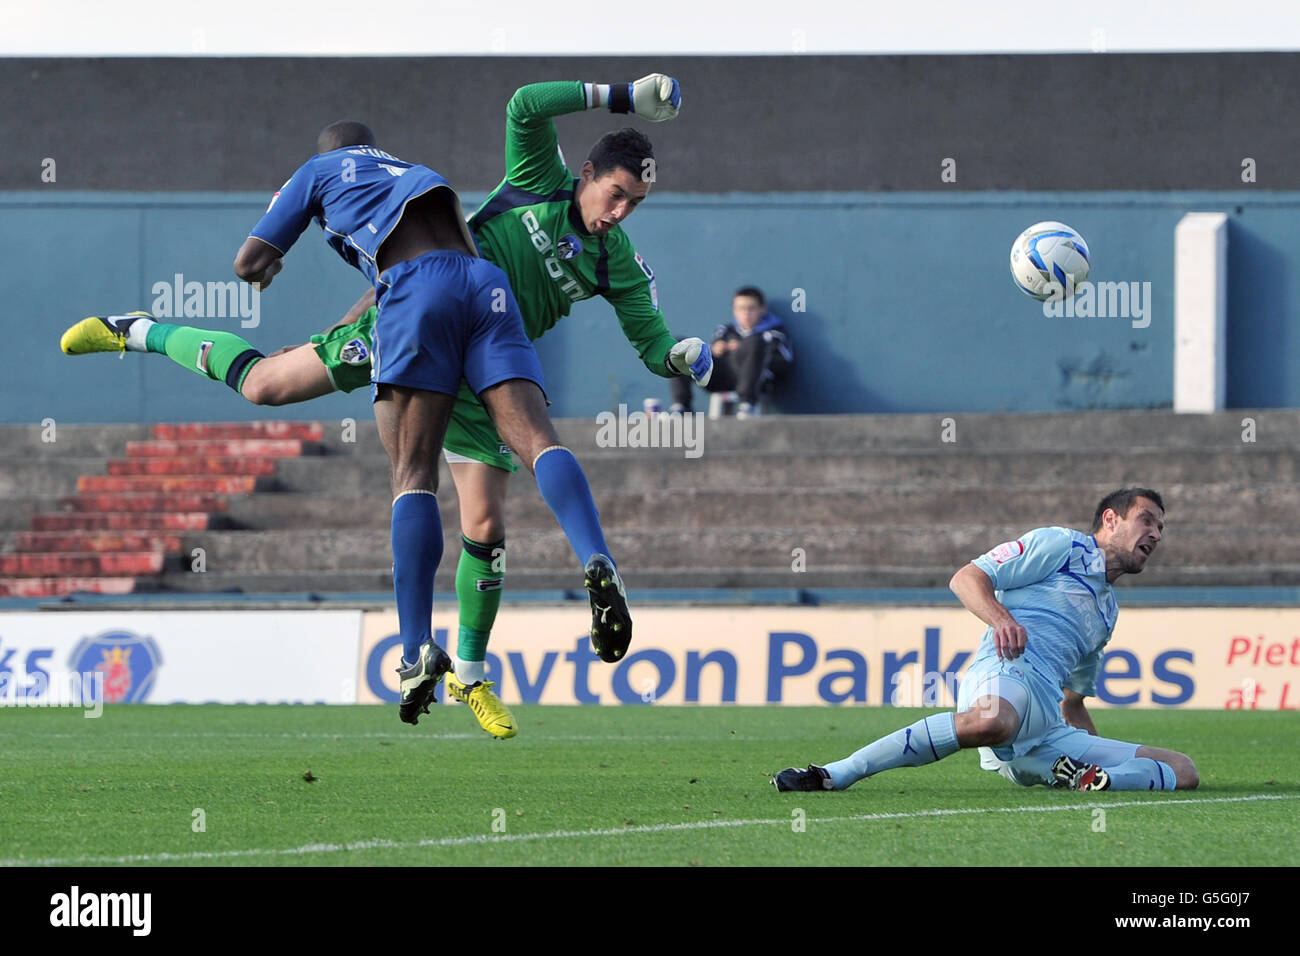 Soccer - npower Football League One - Oldham Athletic v Coventry City - Boundary Park - Stock Image